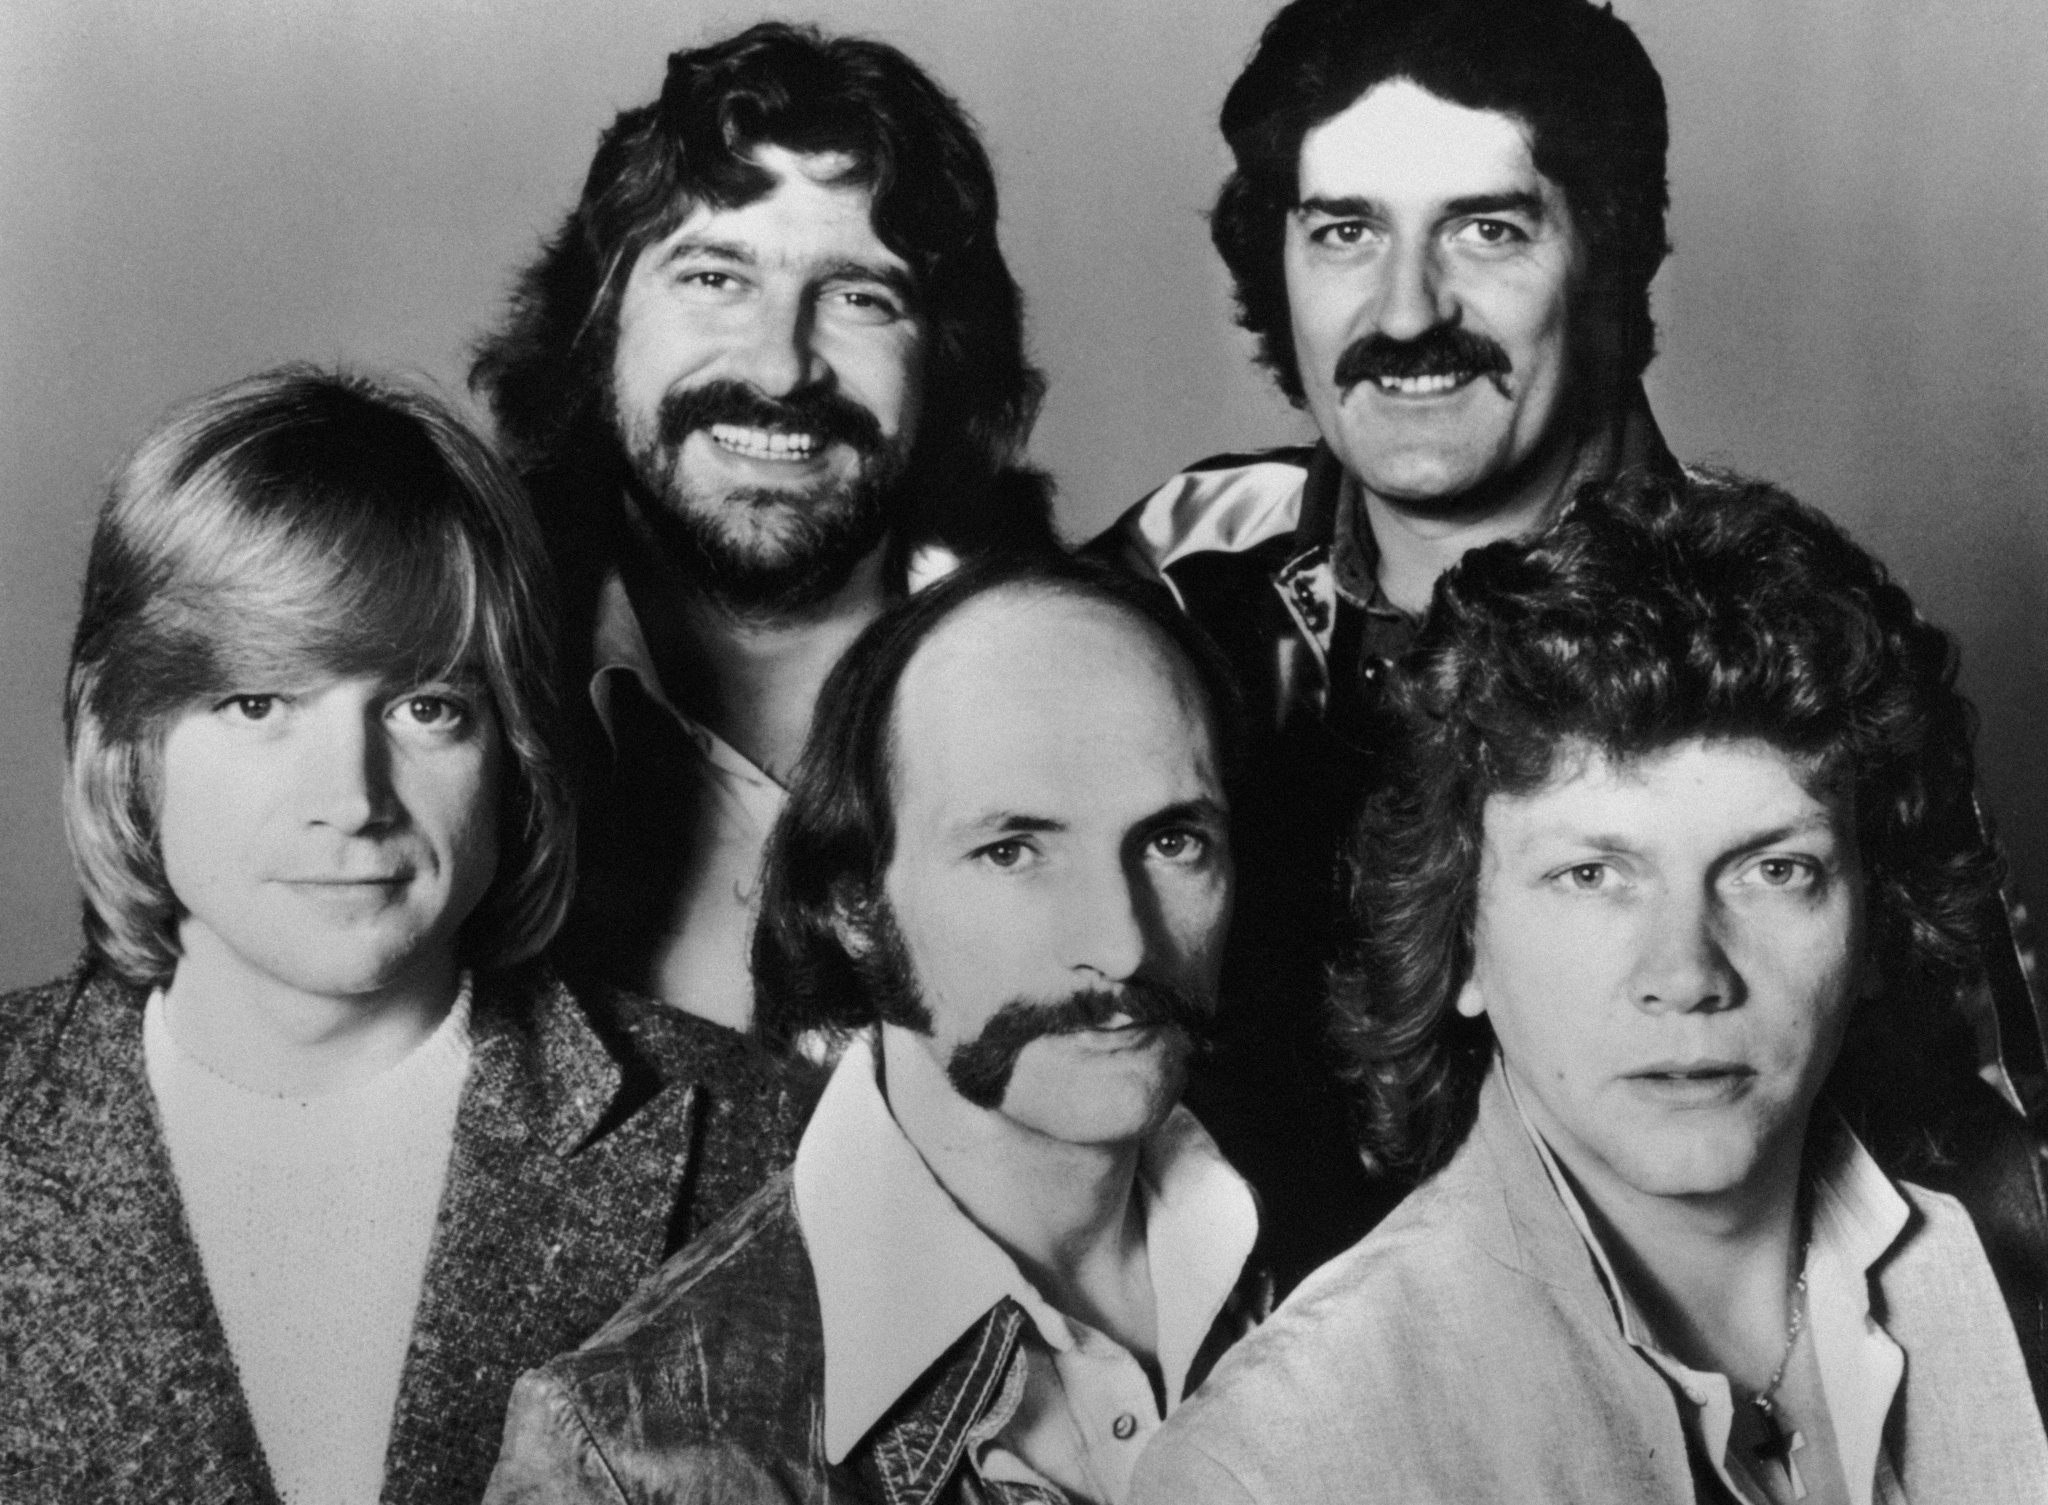 The Moody Blues' Ray Thomas has died https://t.co/H3YC2geqTQ https://t.co/vxOkNLQhkr